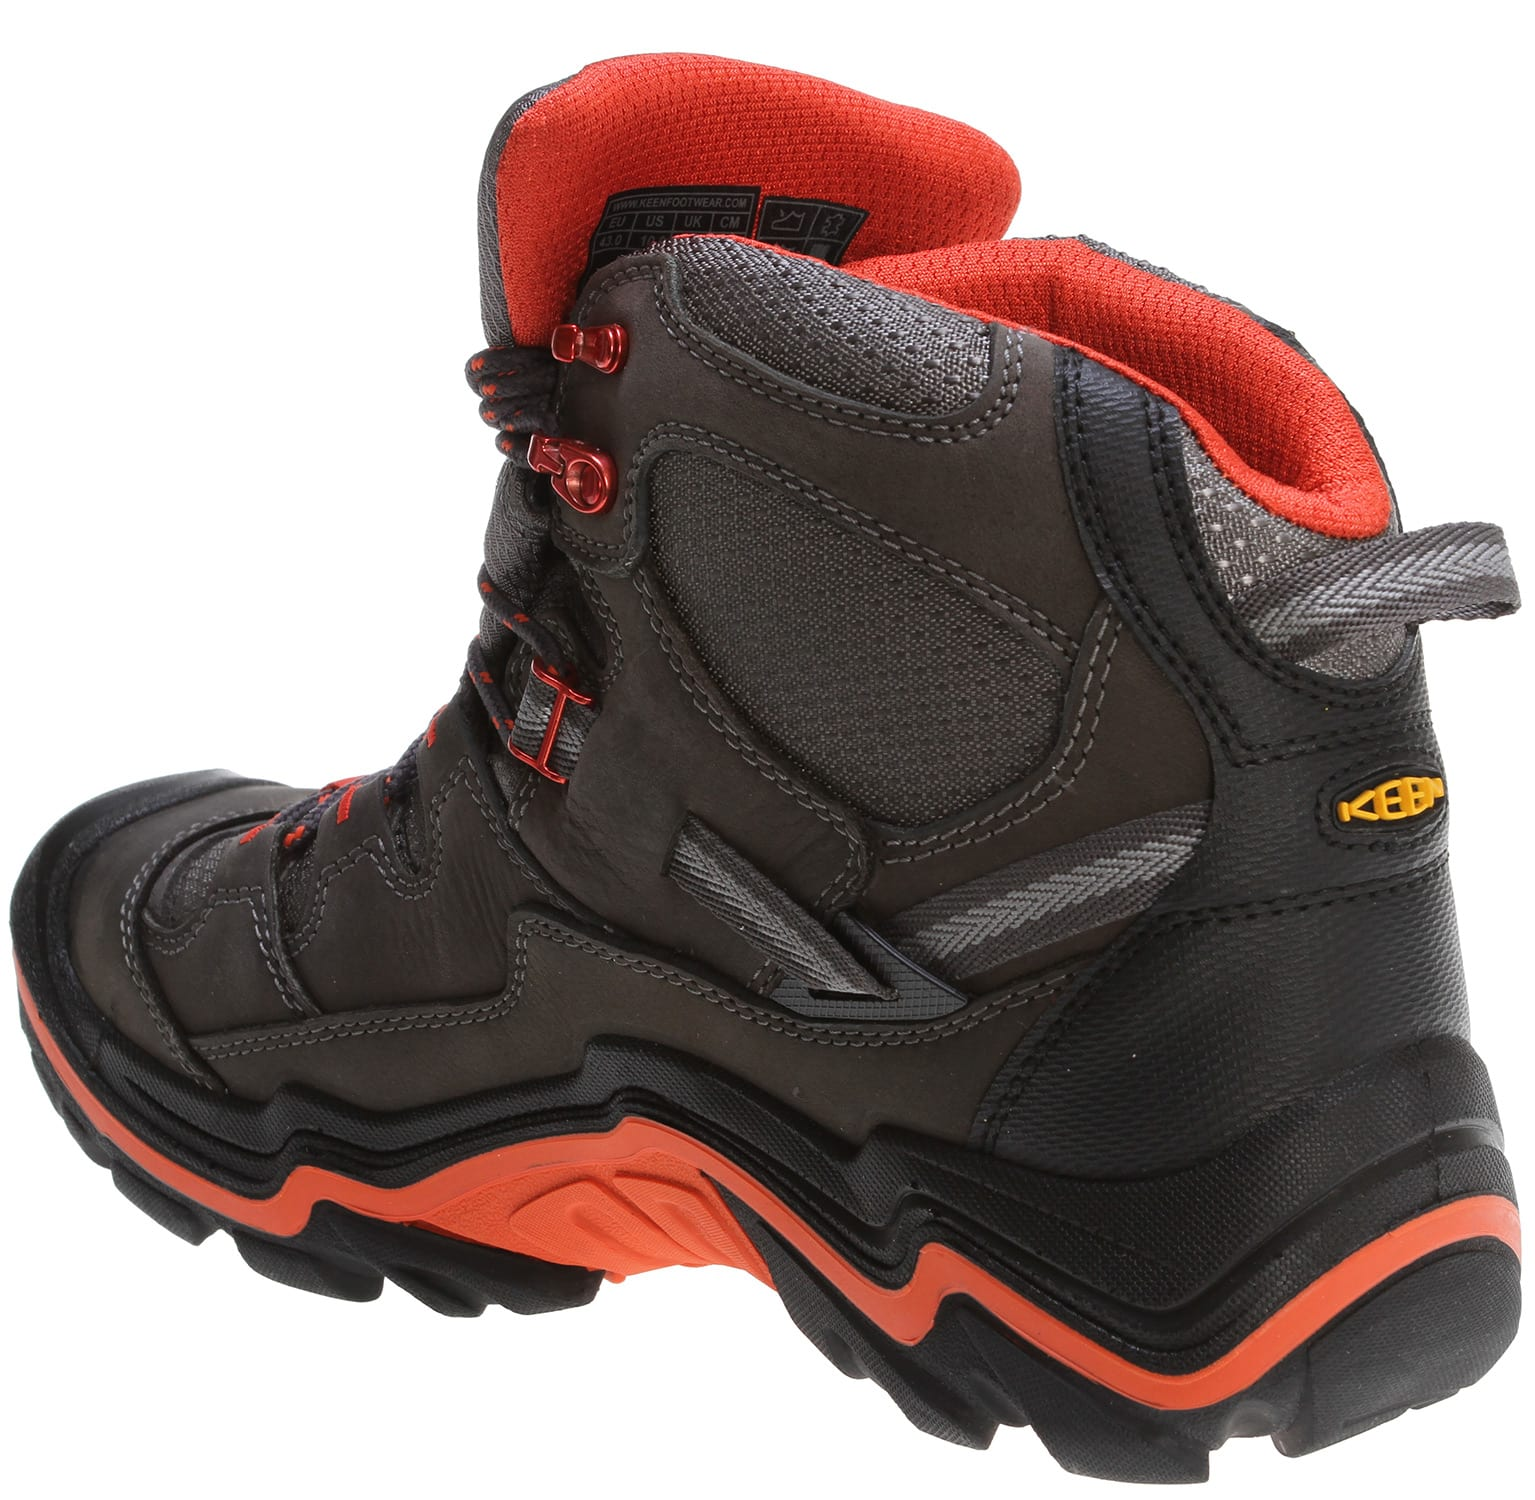 a8bfd2c9d8 Keen Durand Mid WP Hiking Boots - thumbnail 3